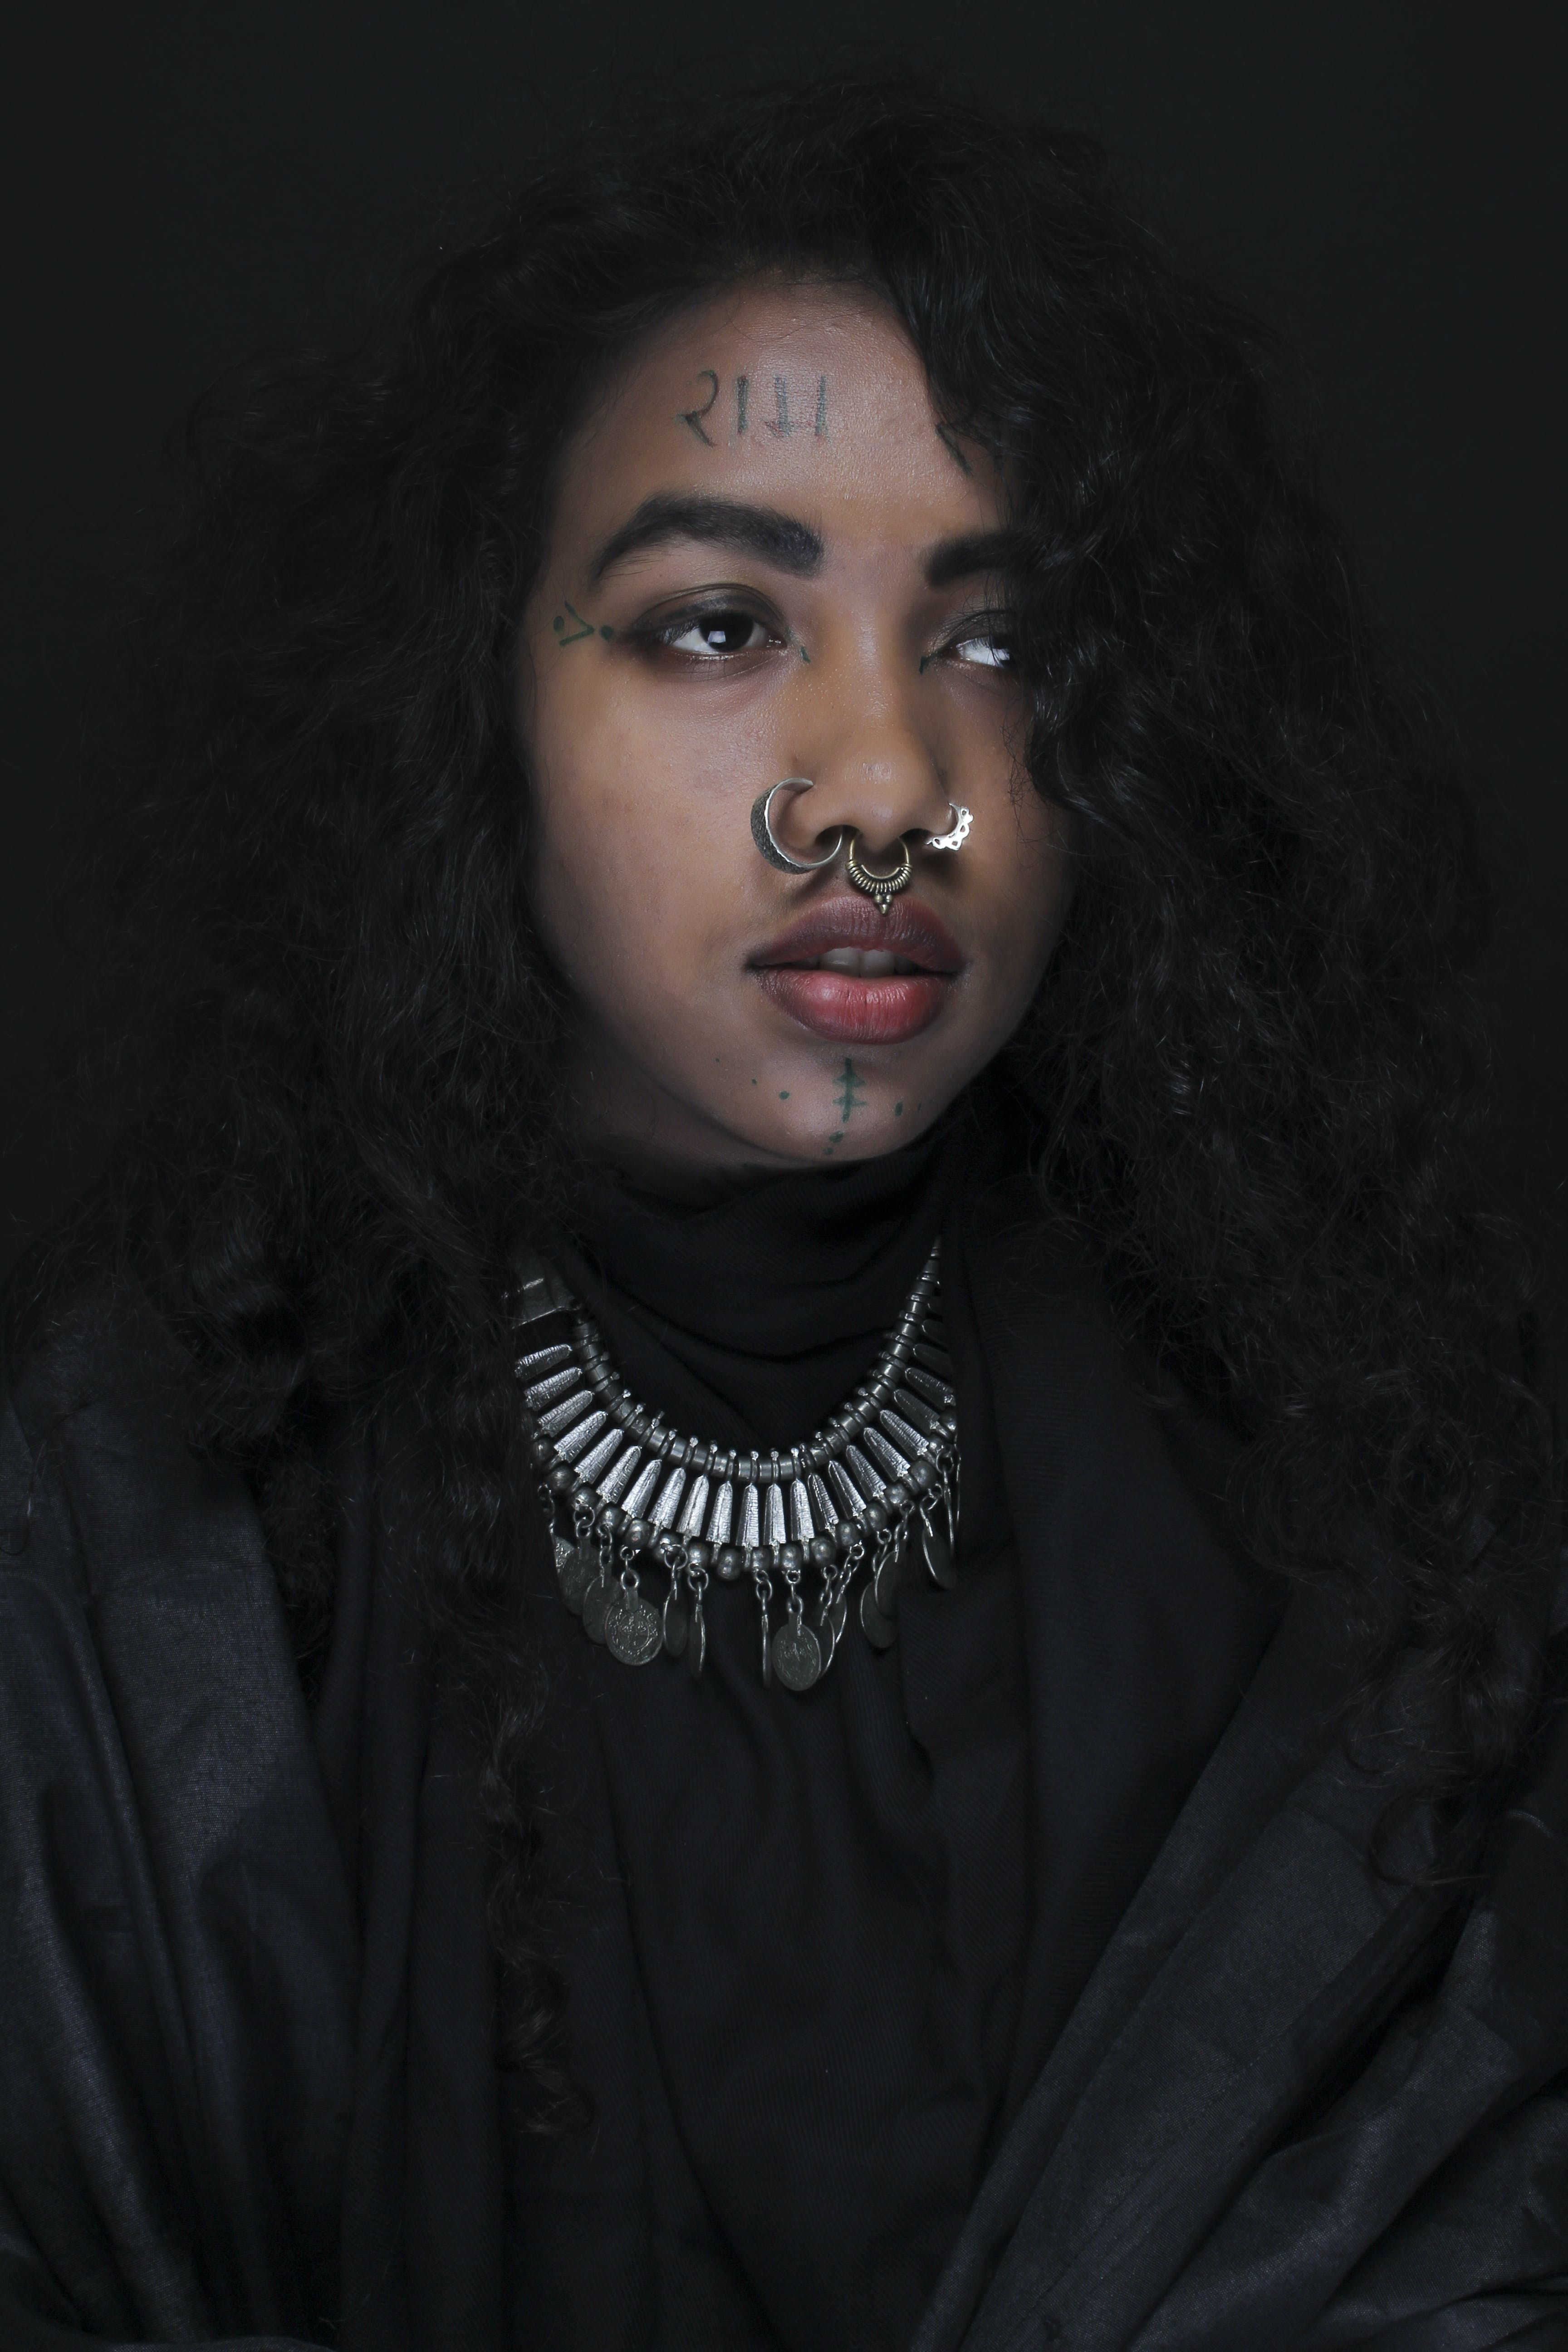 Woman Wearing Black Dress With Silver-colored Nose Piercings